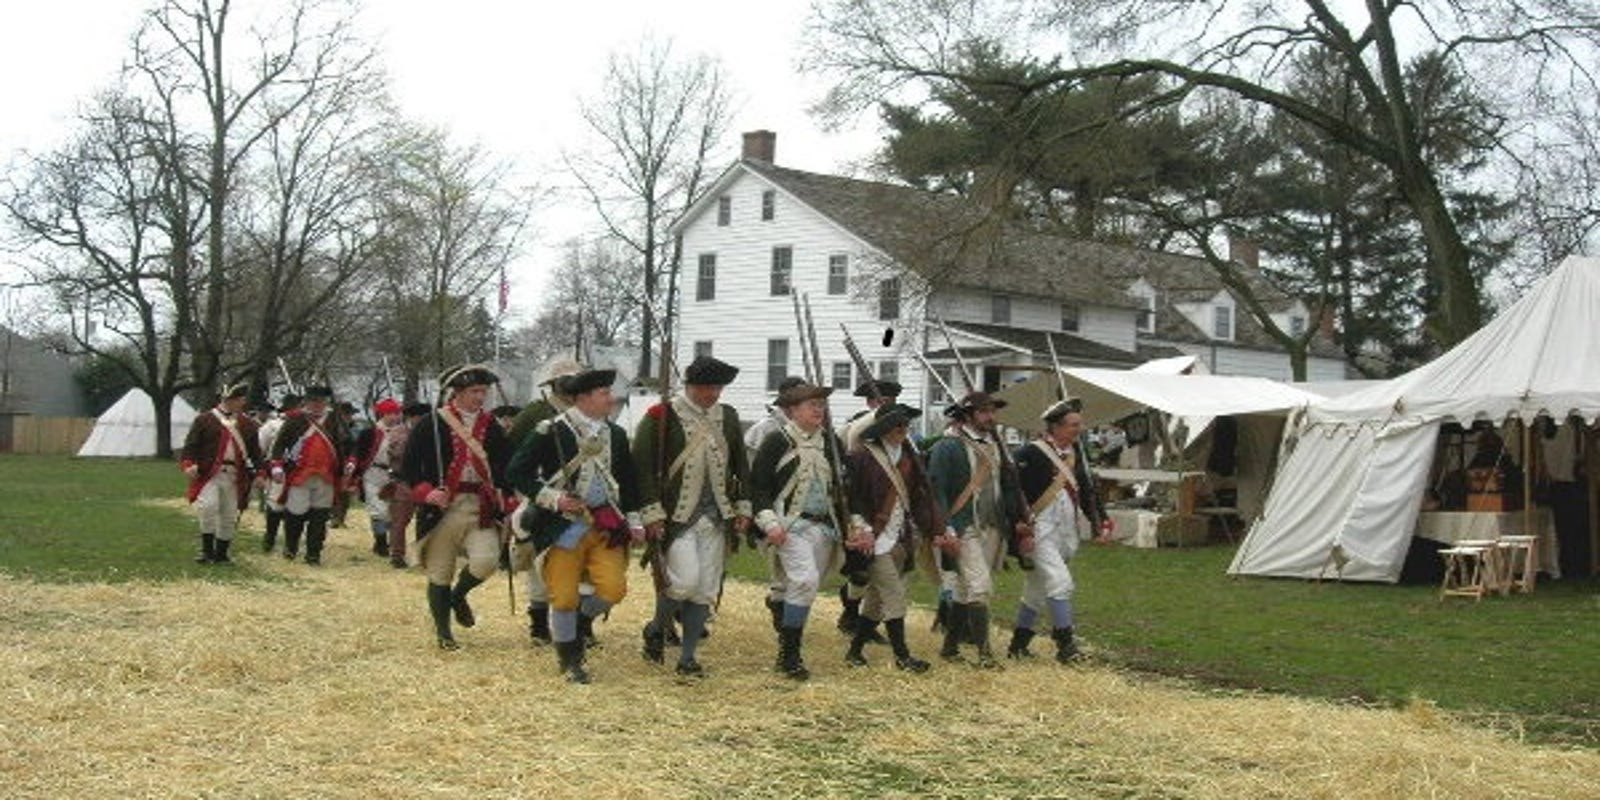 Relive history: Battle of Bound Brook